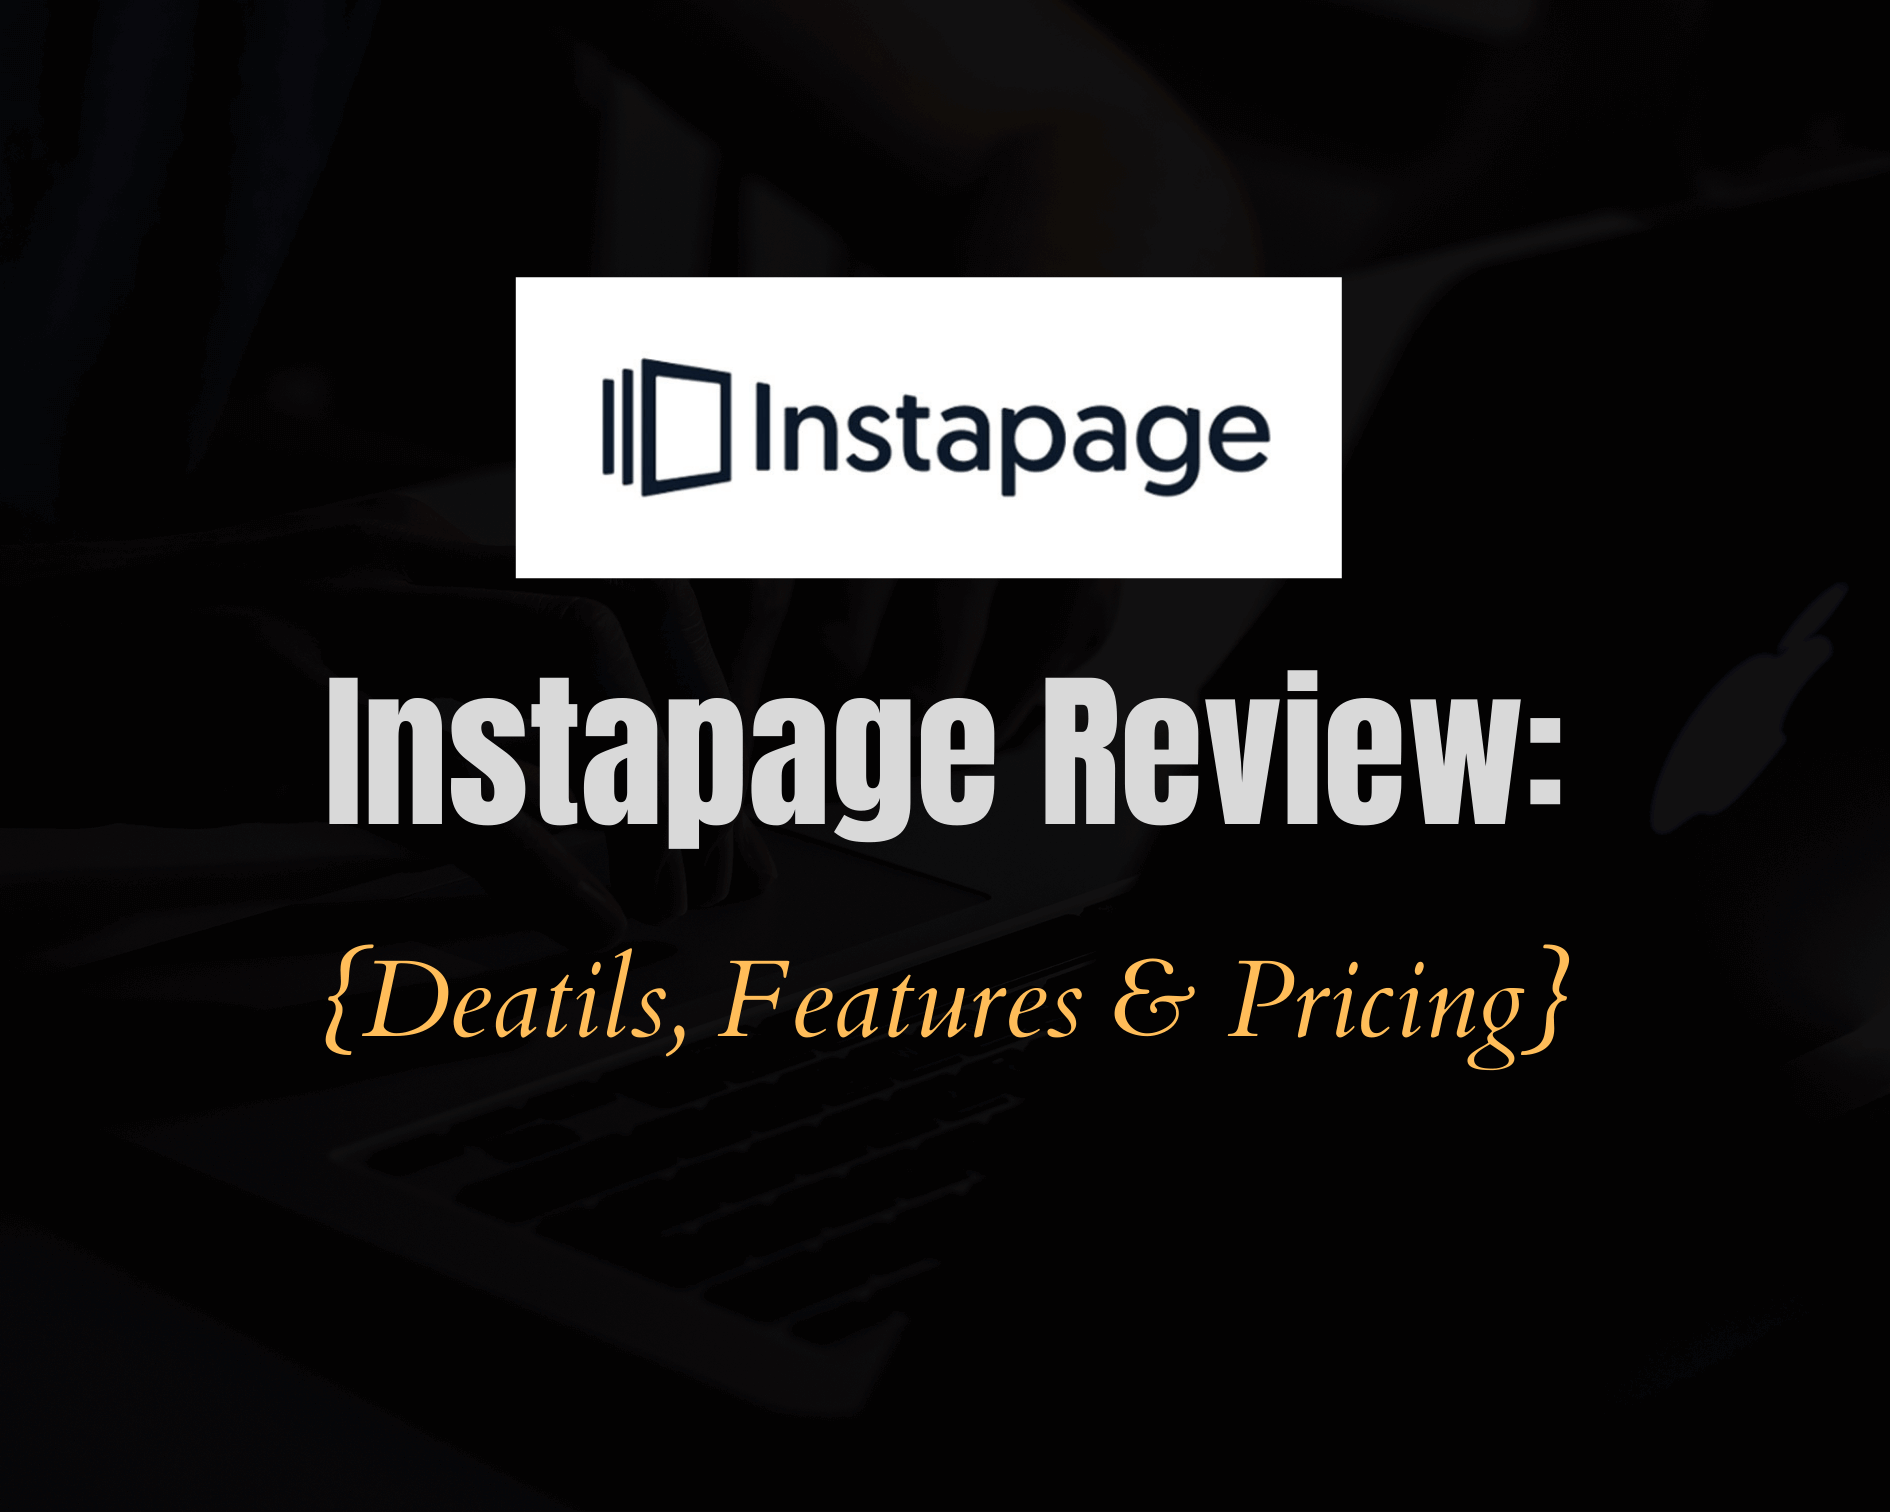 Instapage Review 2020: Details, Features & Pricing